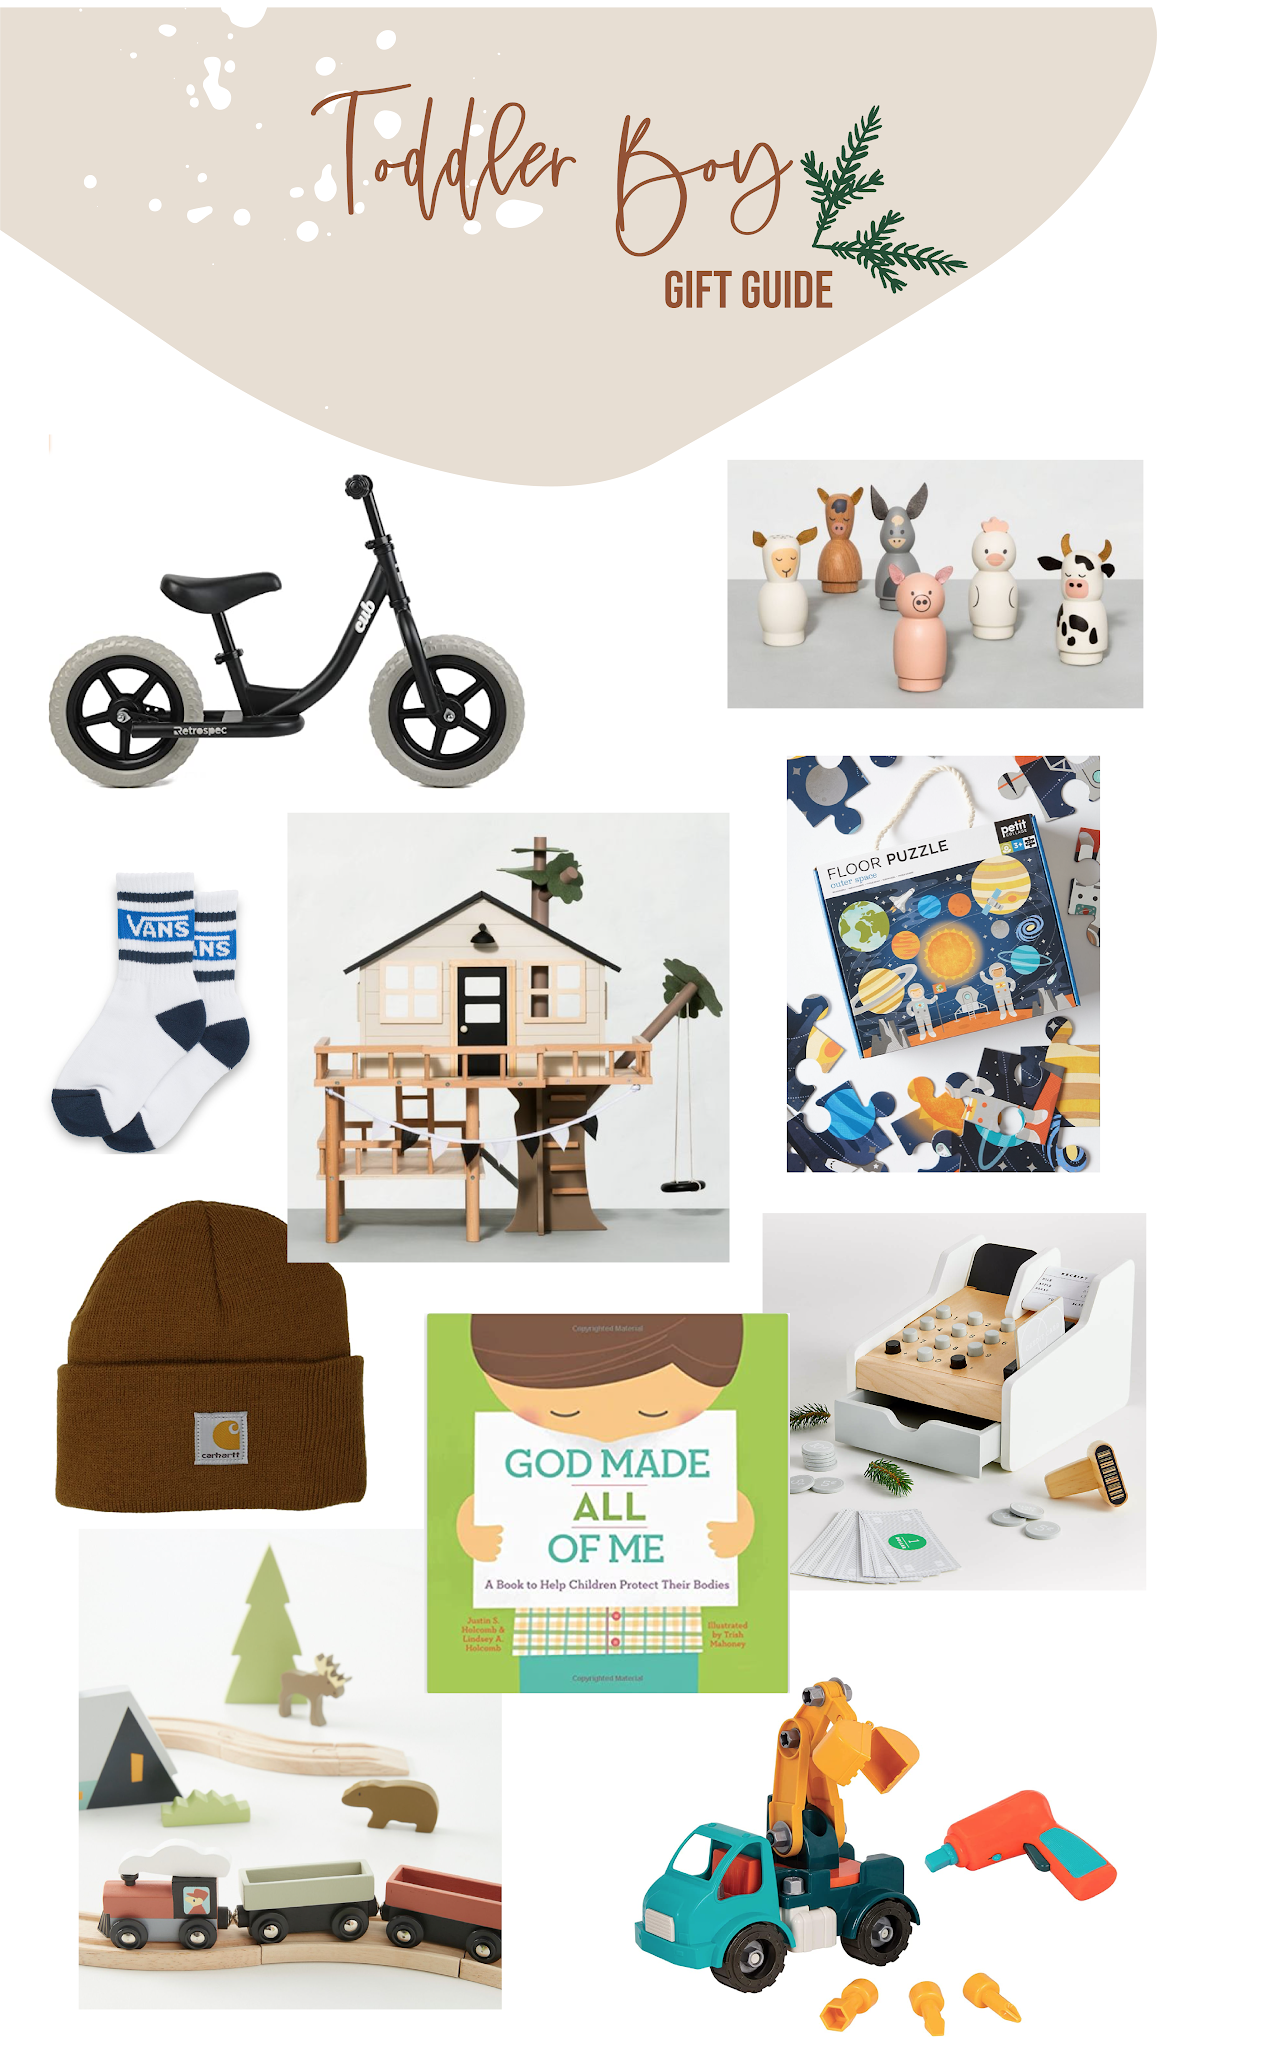 Toddler Gift Guide, Wooden Toys, Balancing Bike, Imaginative Play